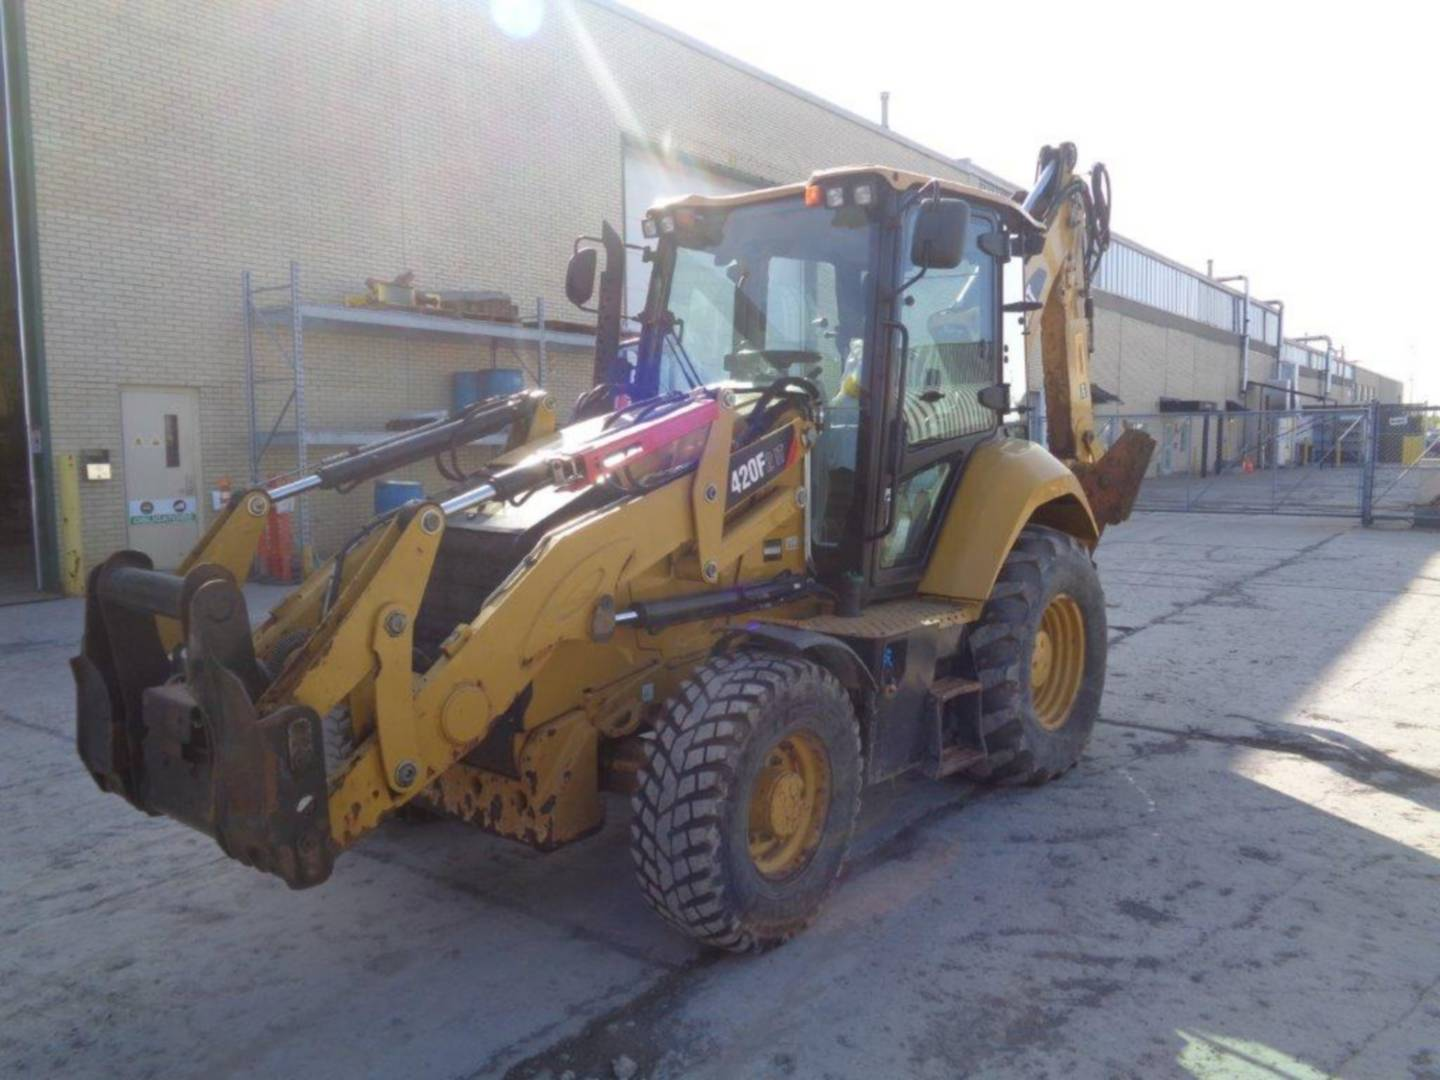 Used Backhoe Loaders For Sale in NJ, PA, DE and Staten Island